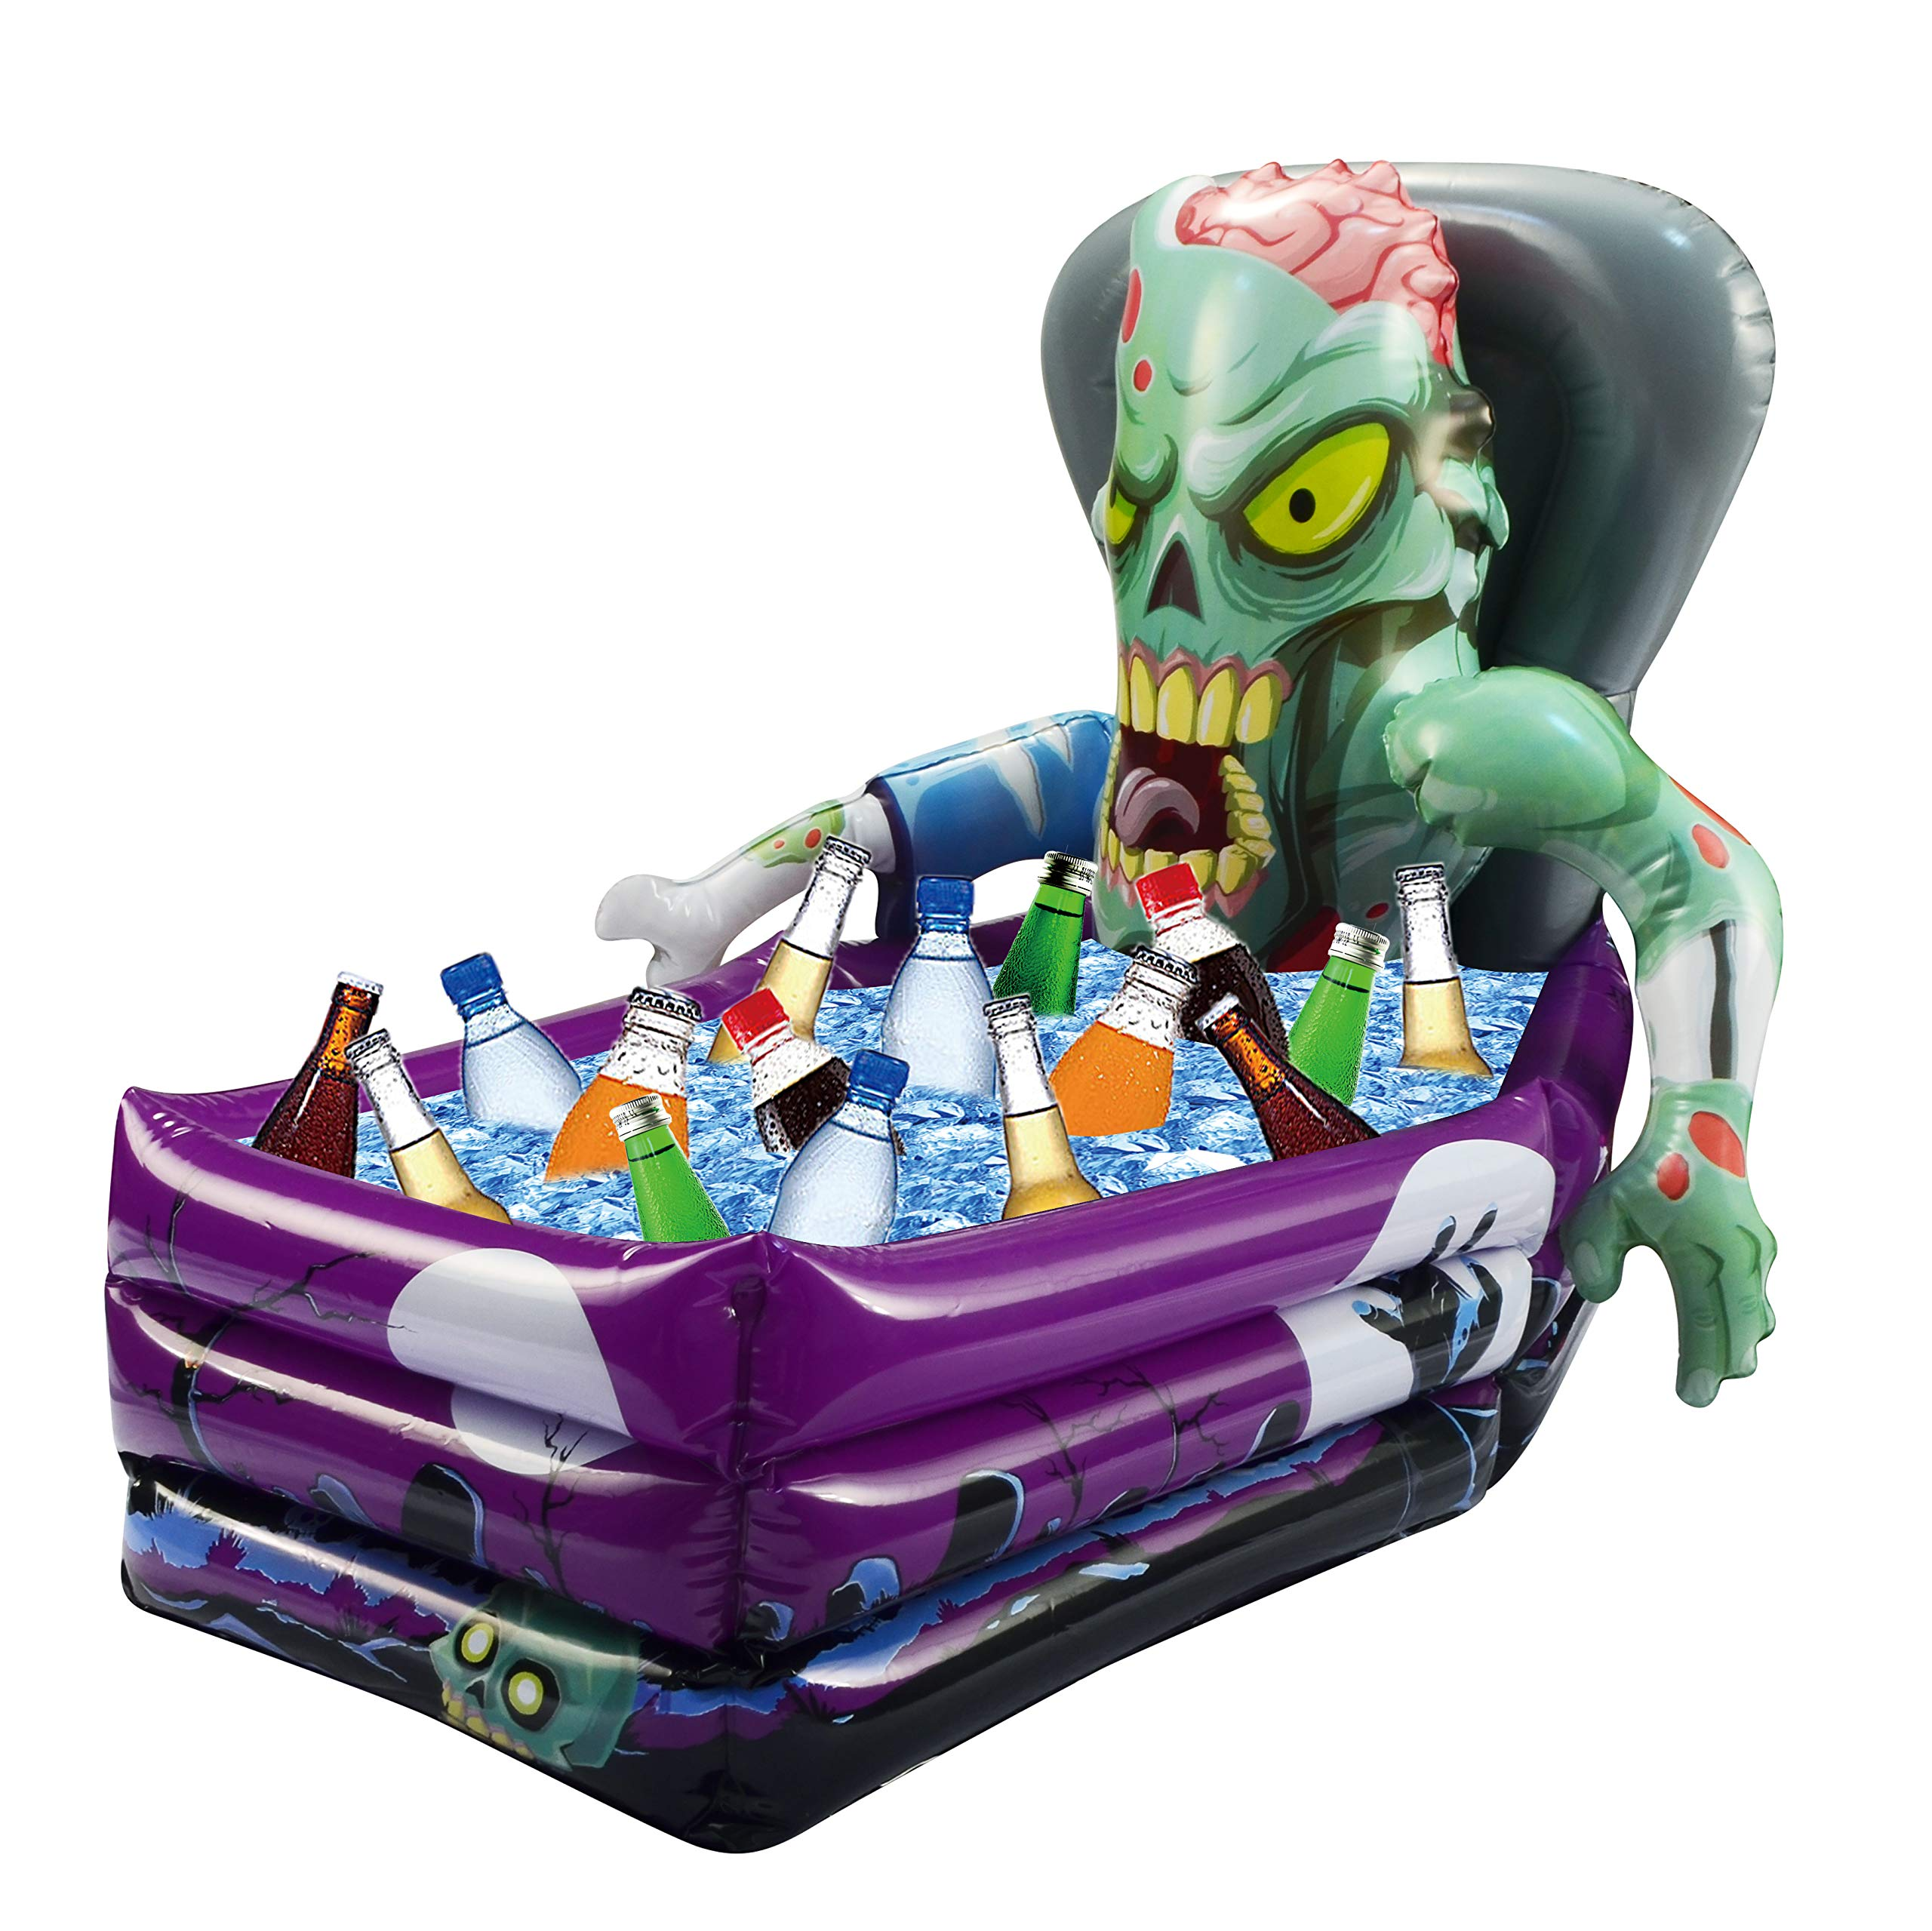 Halloween Party Inflatable Zombie Drink Cooler and Decoration (26''x 24''x 38'' Approximate Inflated Size) by JOYIN